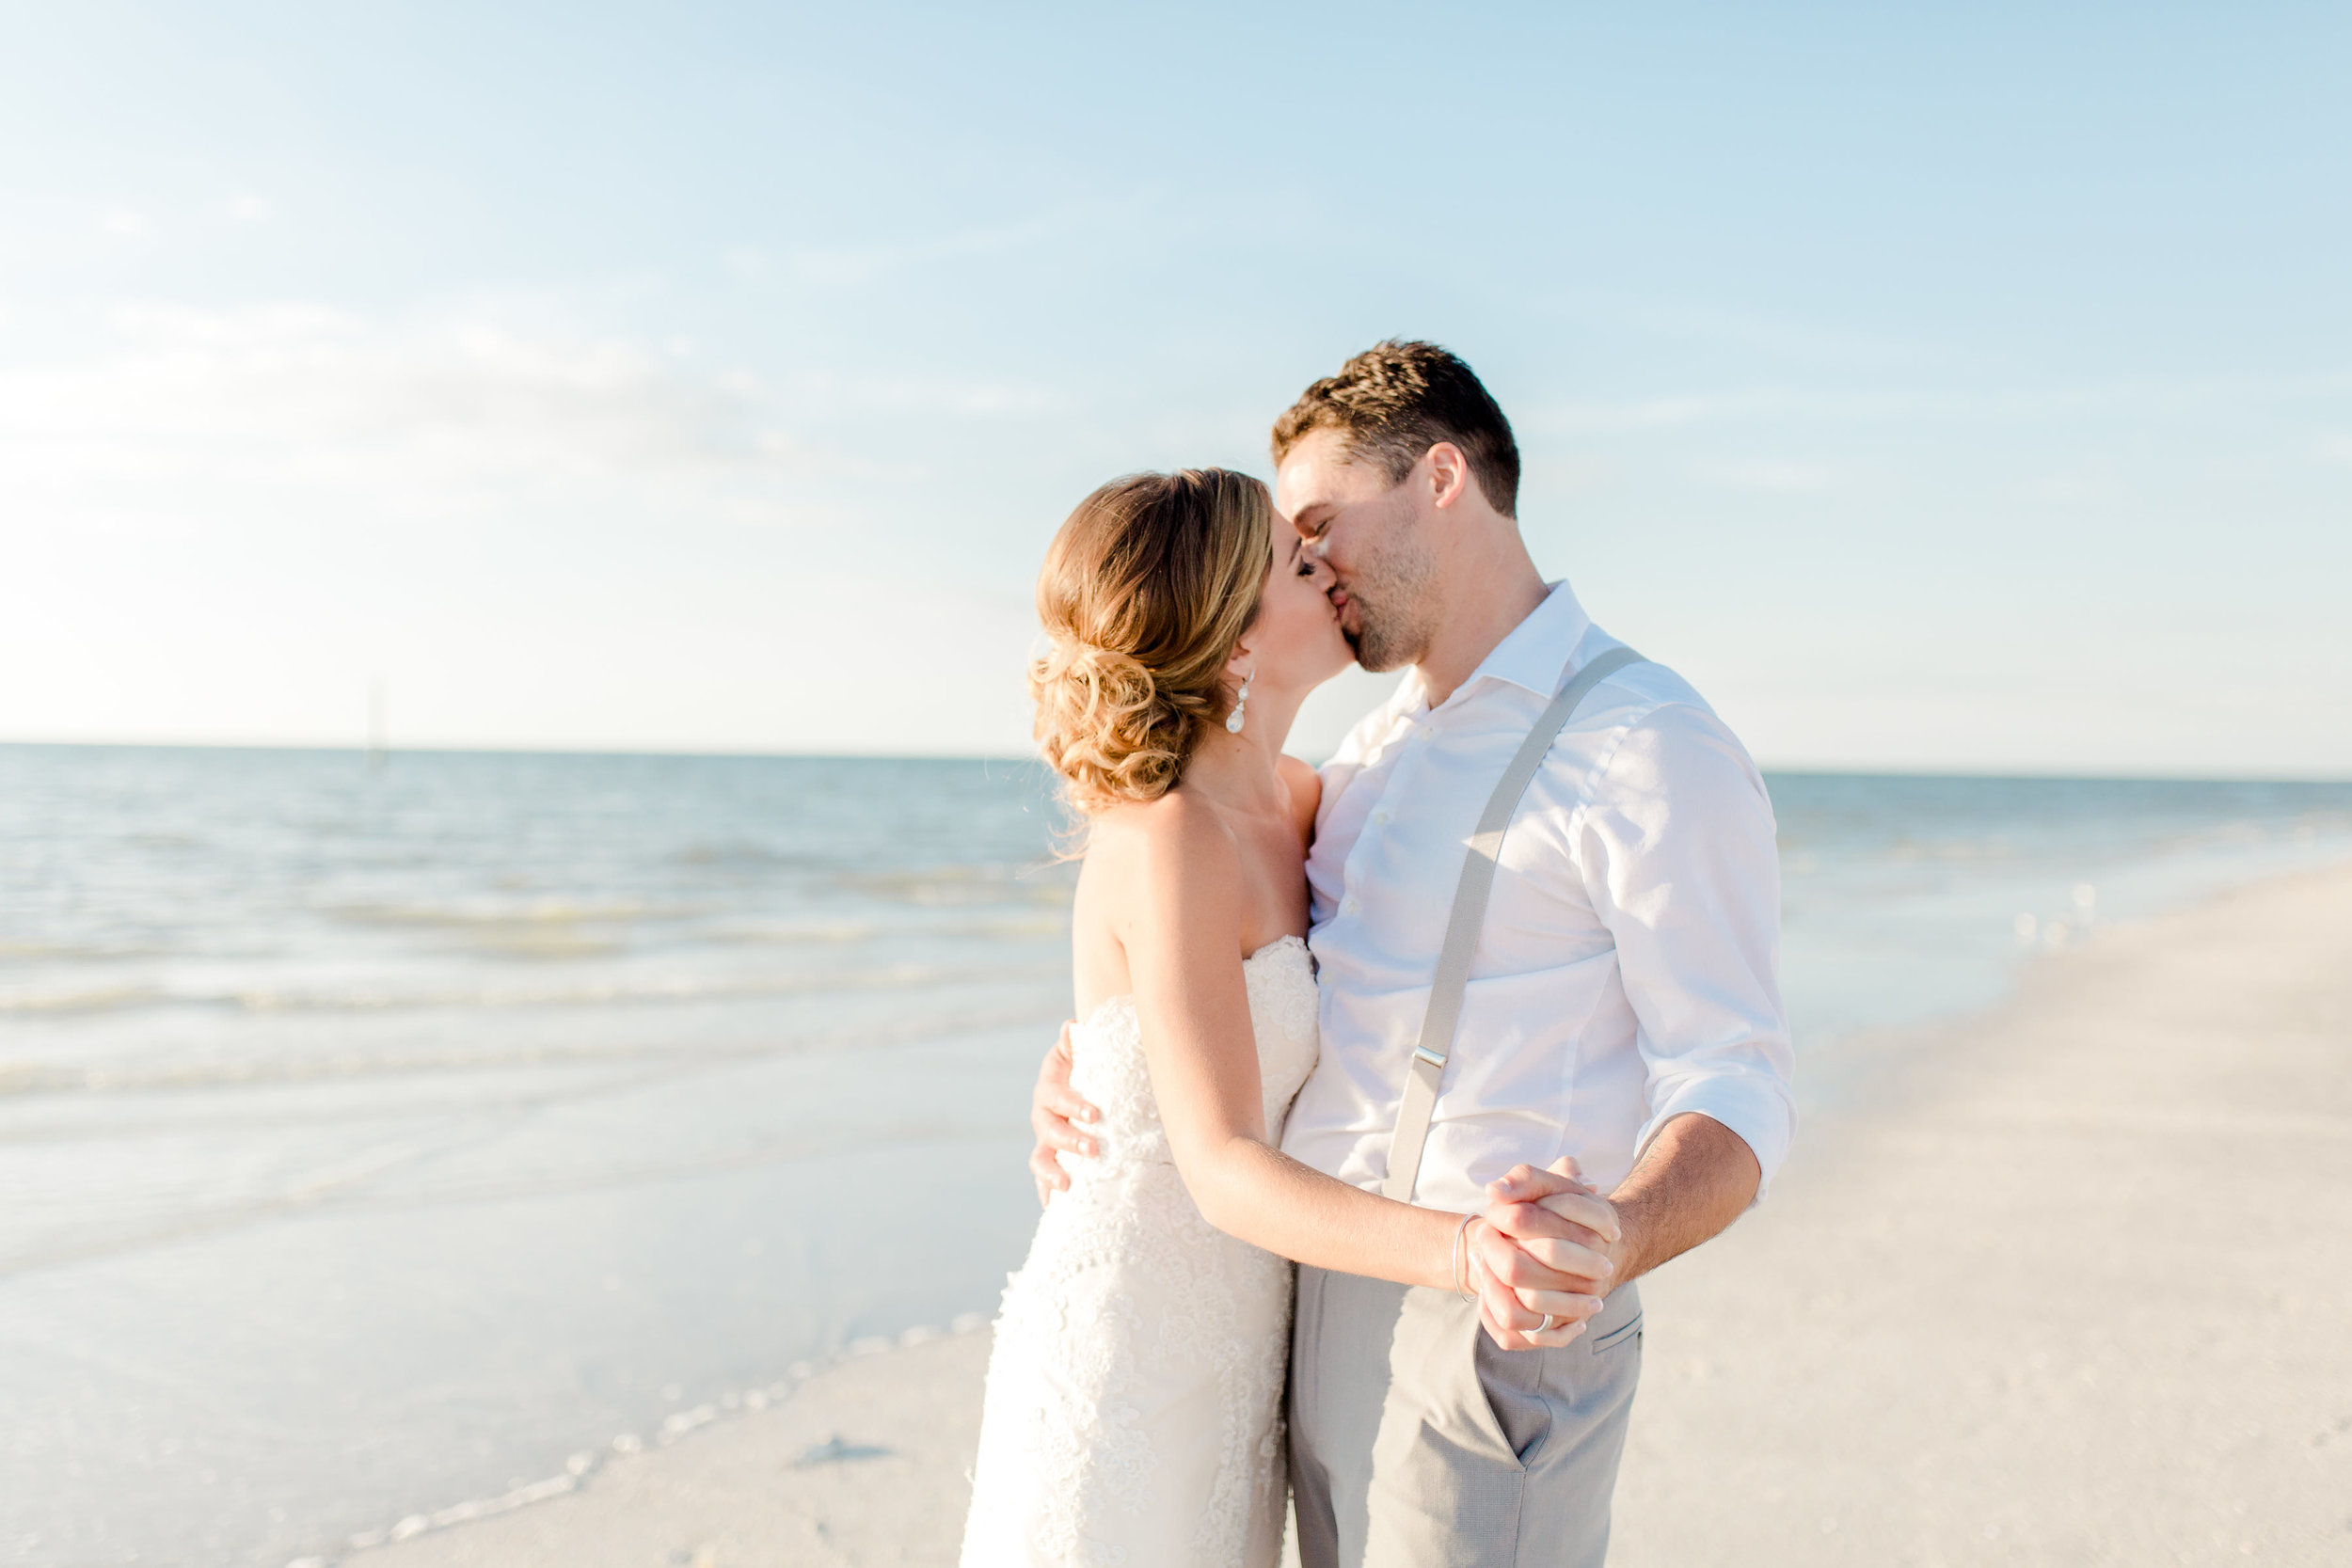 Erin-Jared-clearwater-beach-wedding-portraits-I58A5896.jpg